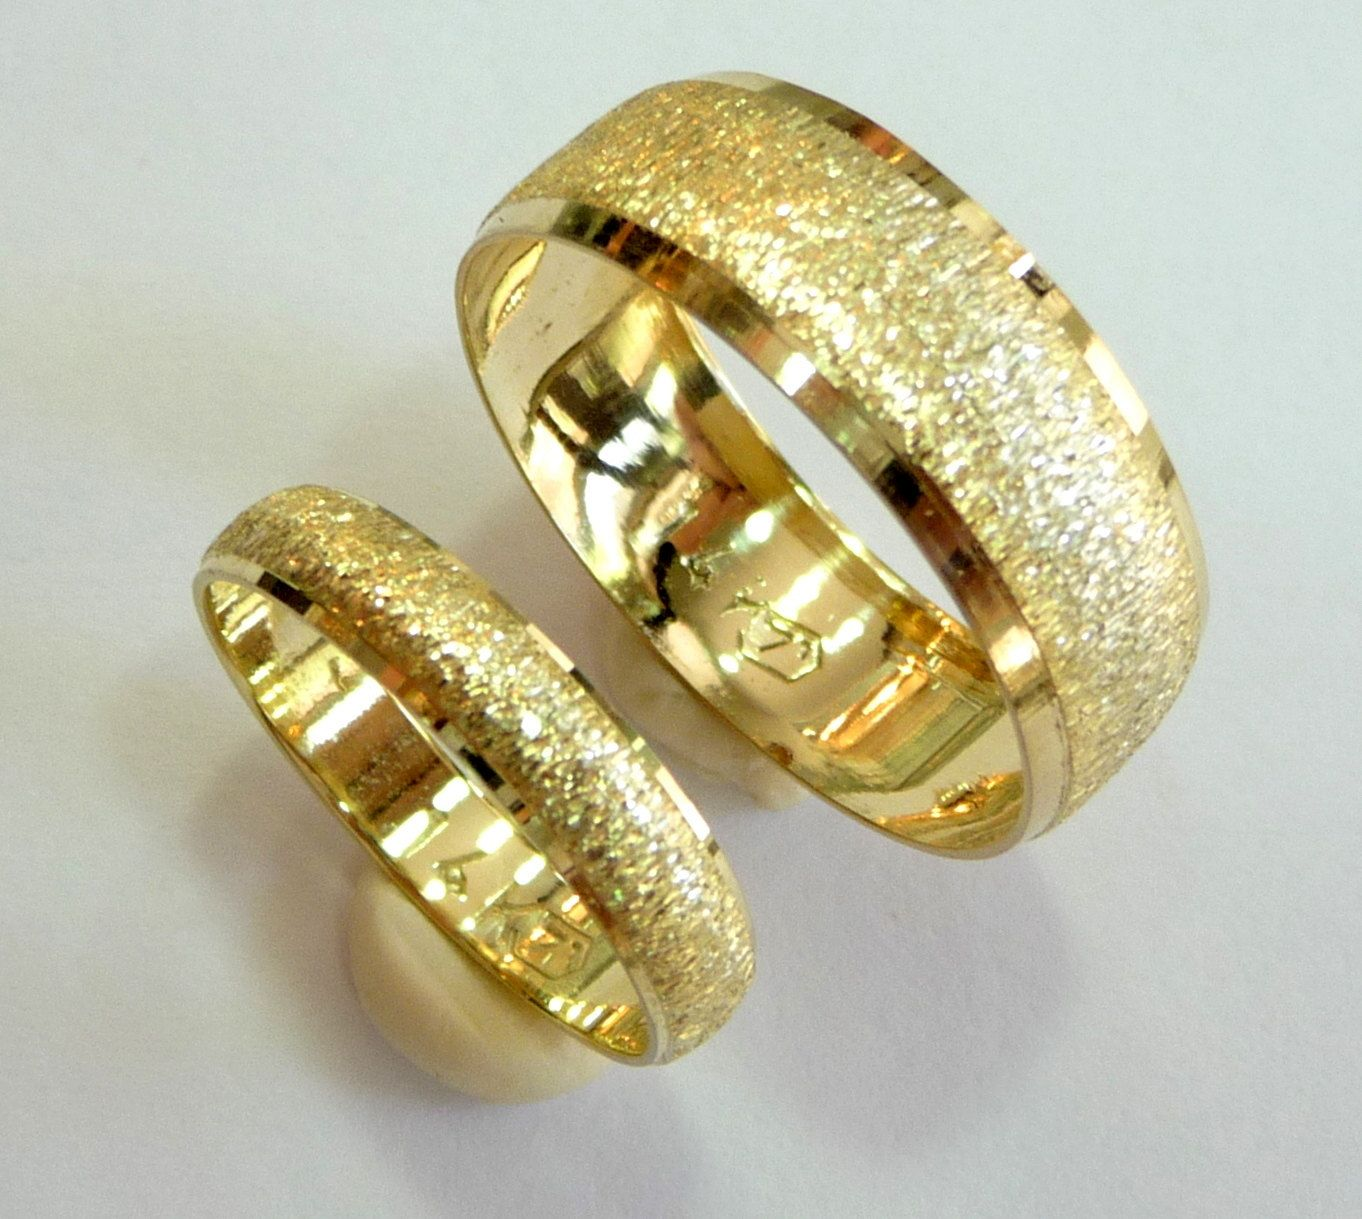 16 wedding bands set gold wedding rings for men and women 14k gold